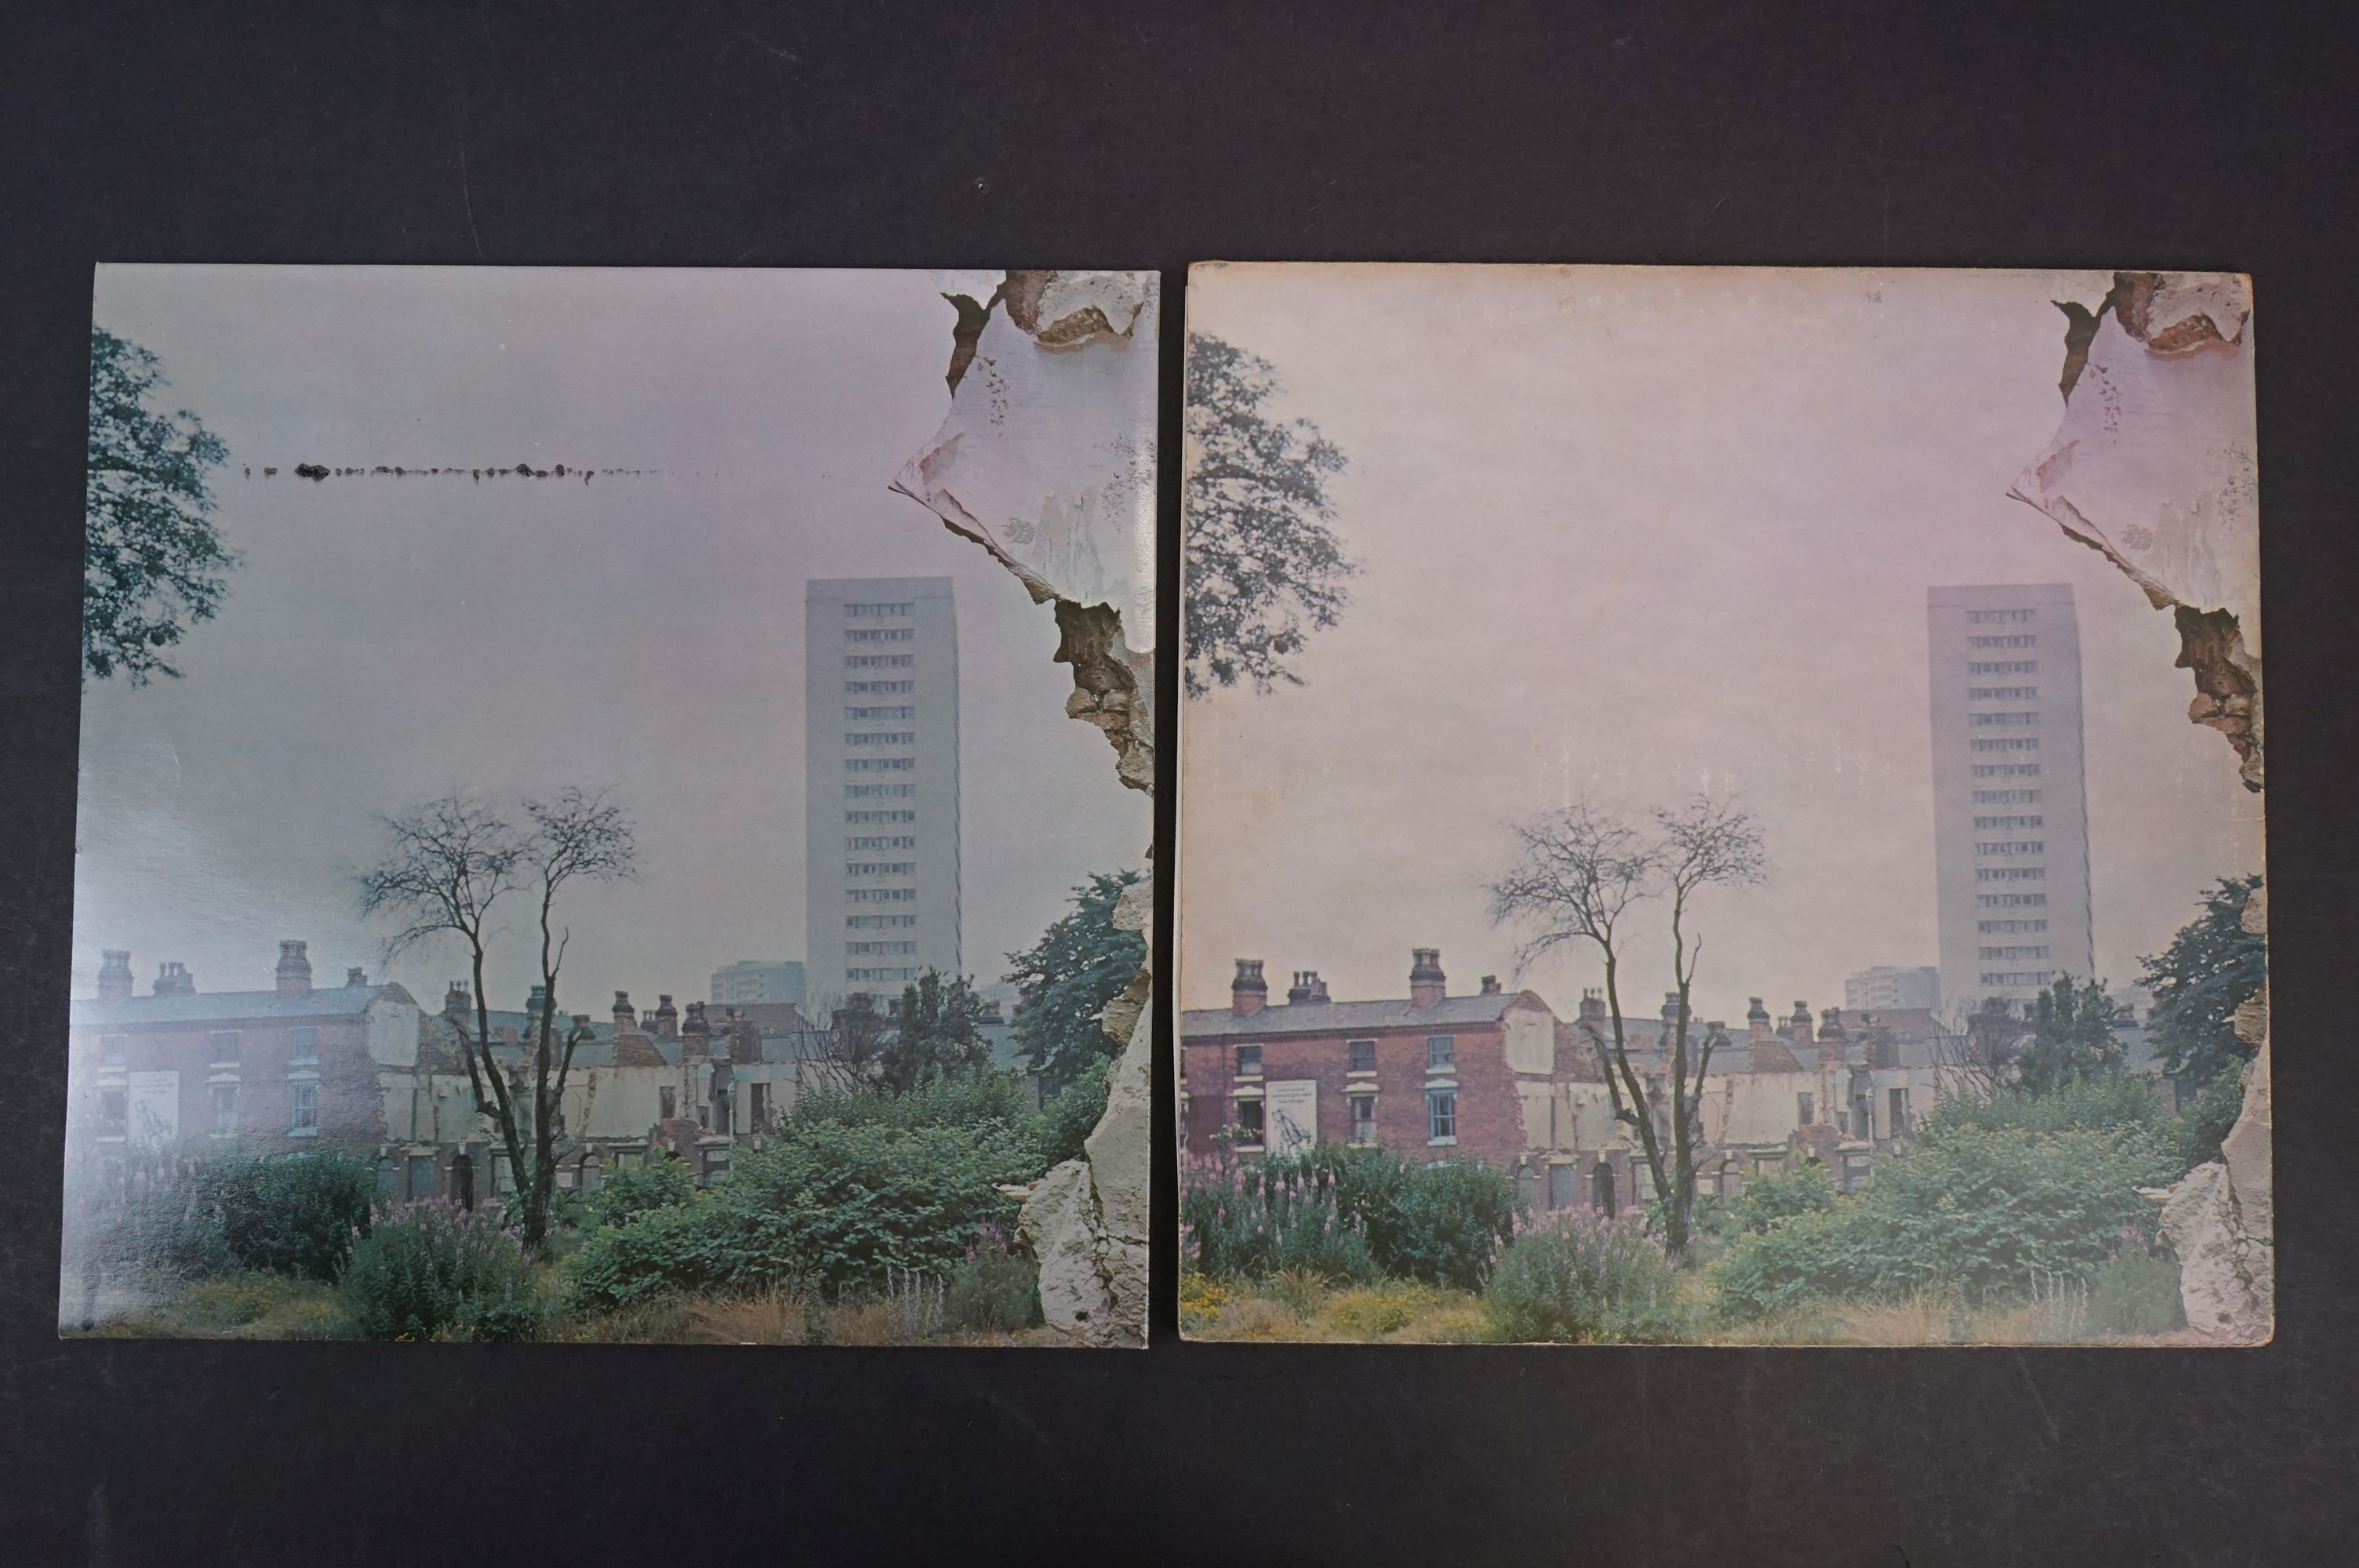 Vinyl - Six Led Zeppelin LPs to include In Through the Outdoor (cover D) SSK59410, Coda 790051, 2 - Image 13 of 17